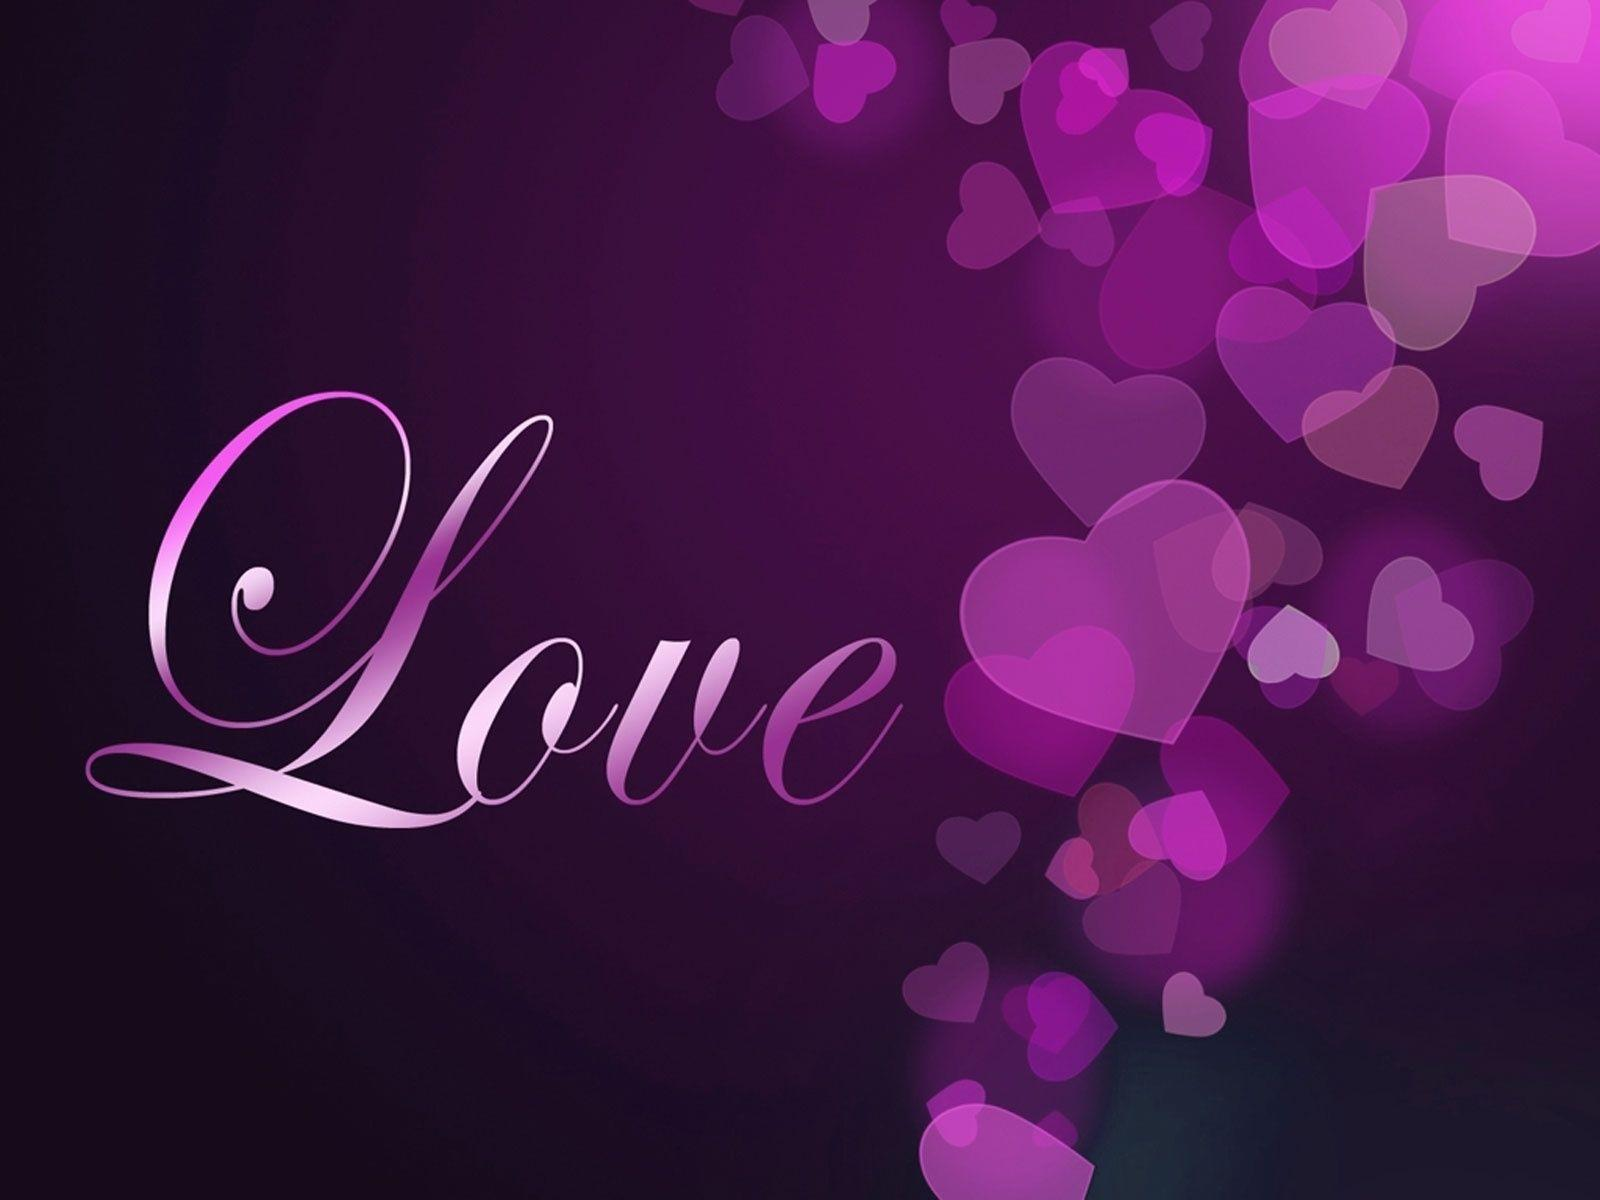 Love Theme Wallpaper Desktop : Purple Heart Wallpapers - Wallpaper cave